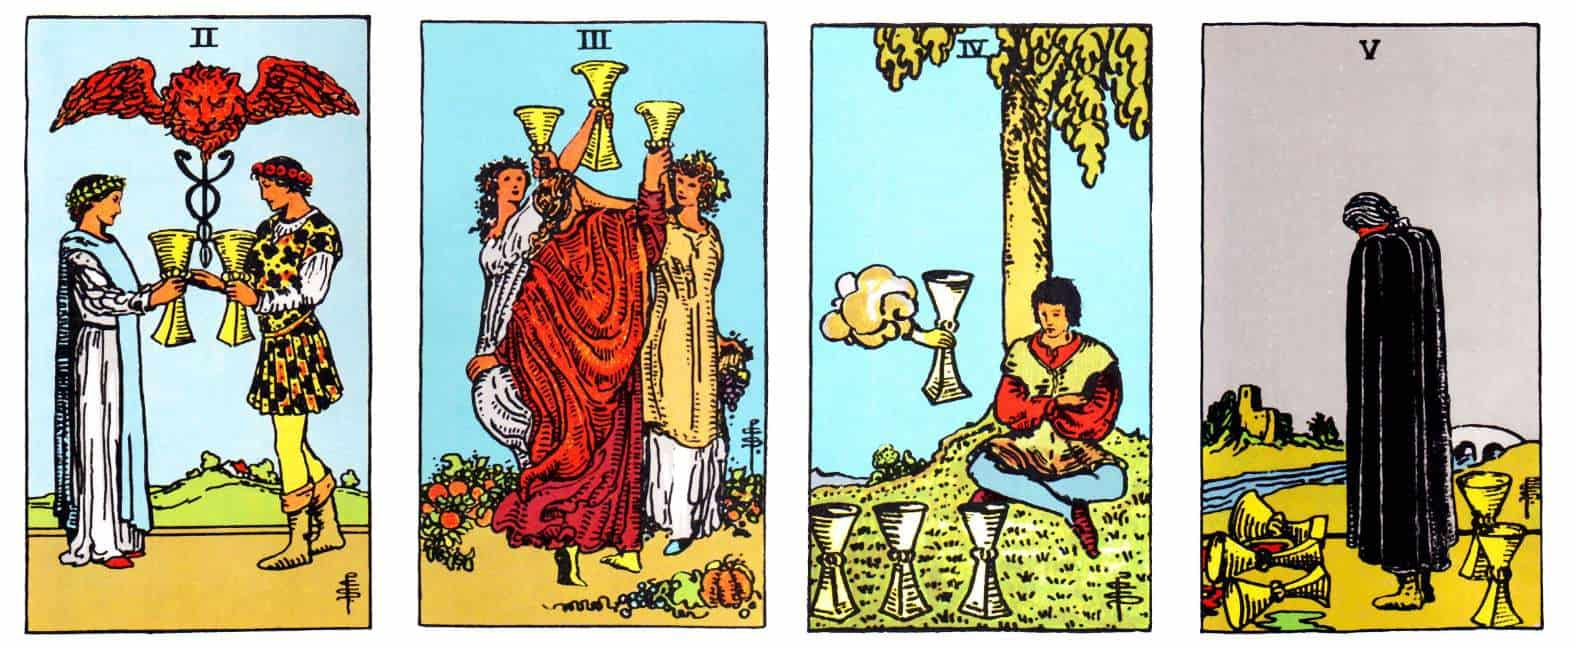 minor arcana suits of cups